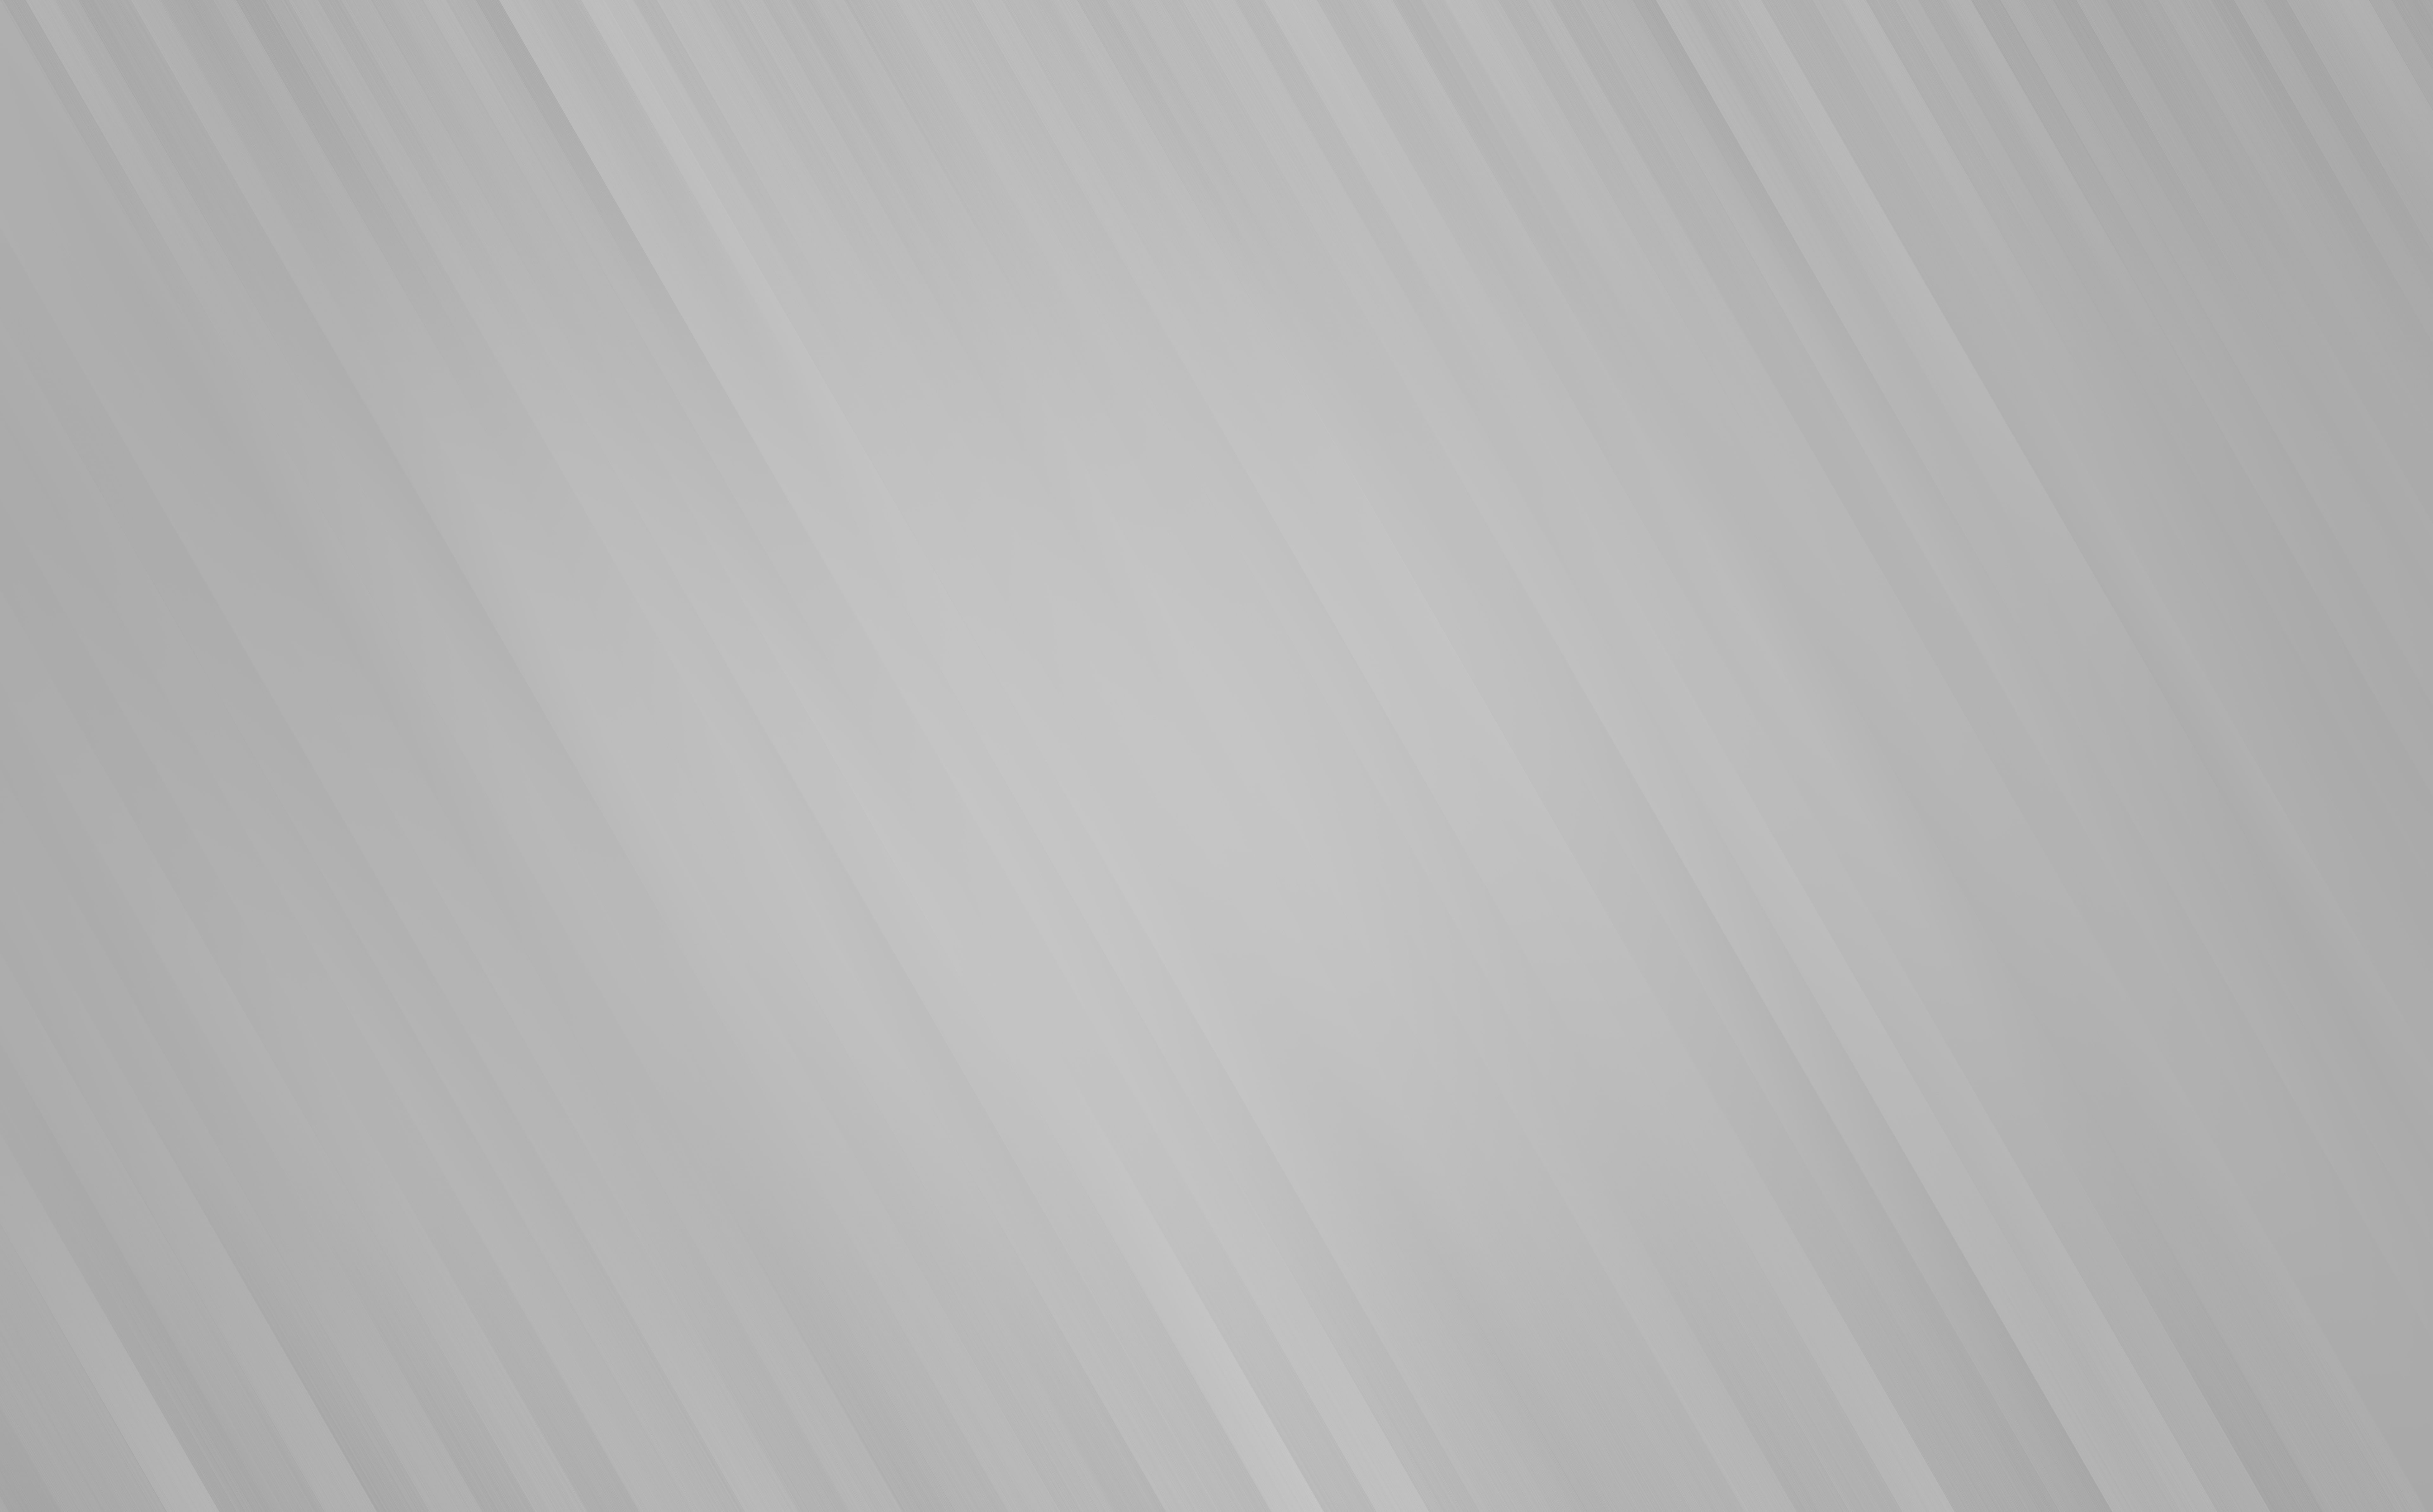 Abstract Background Gray Aero Colorful Lines Abstract Gray